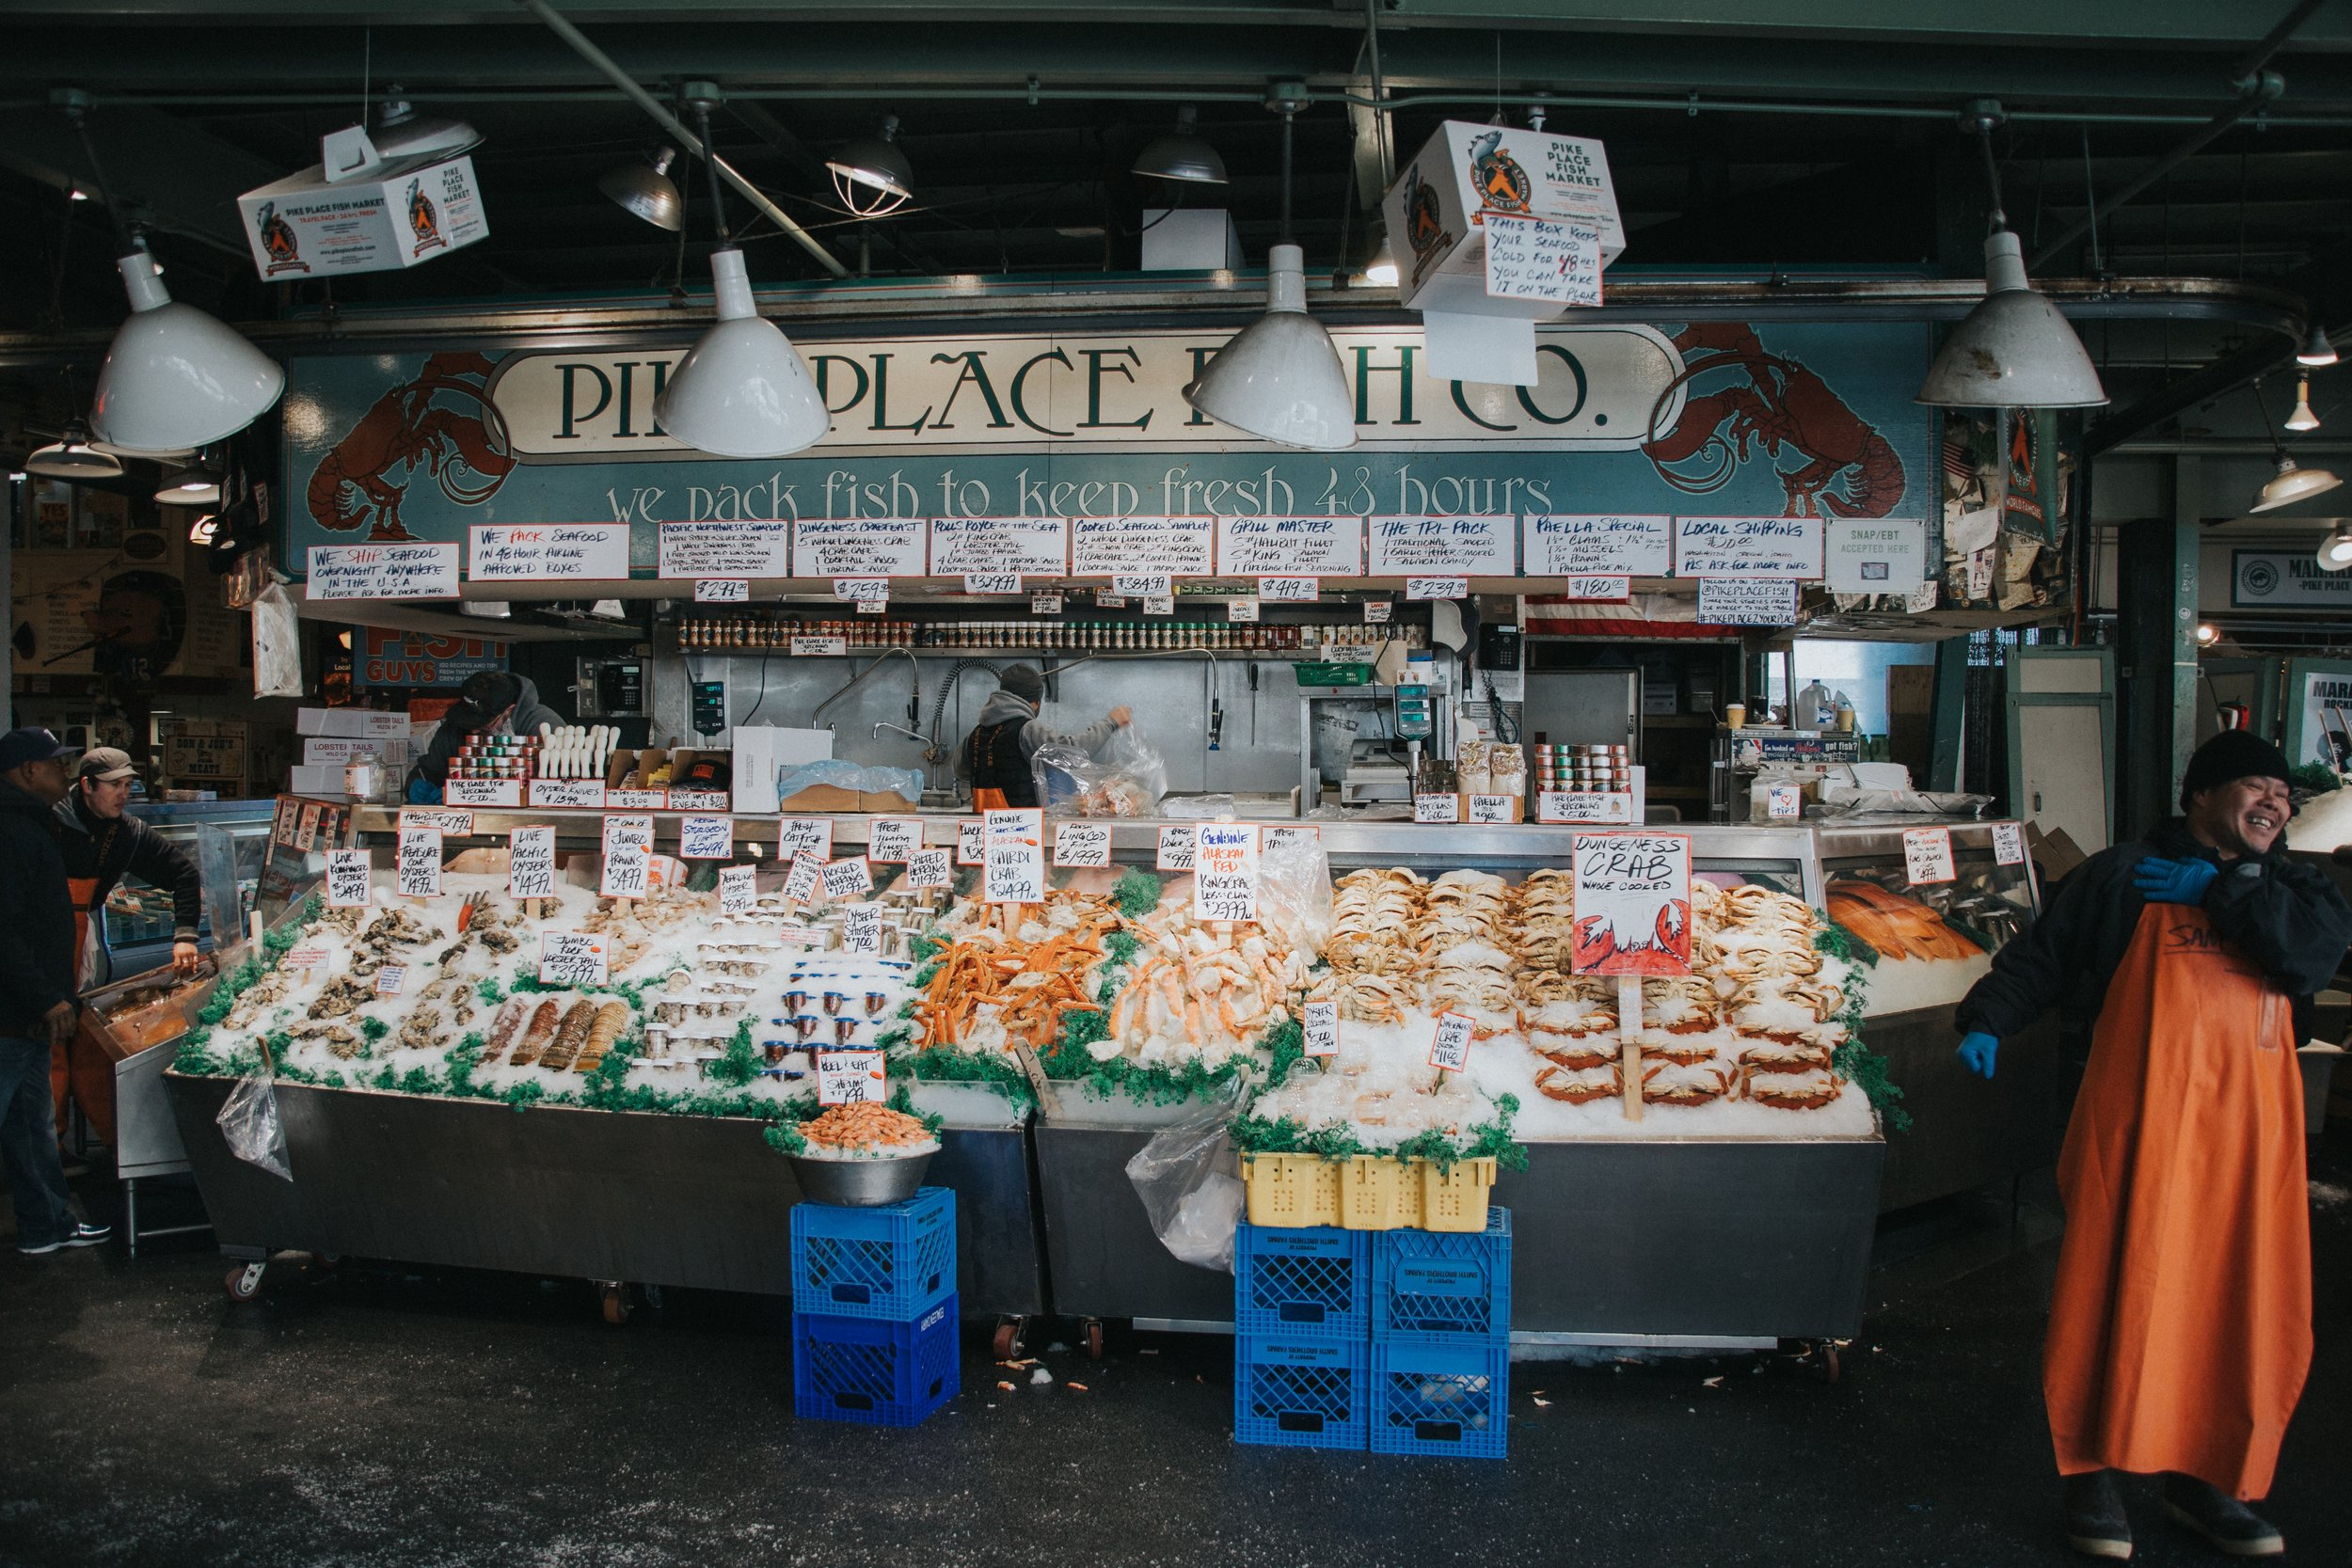 Insiders guide to seattle -public market fish stalls - www.letsregale.com.jpg